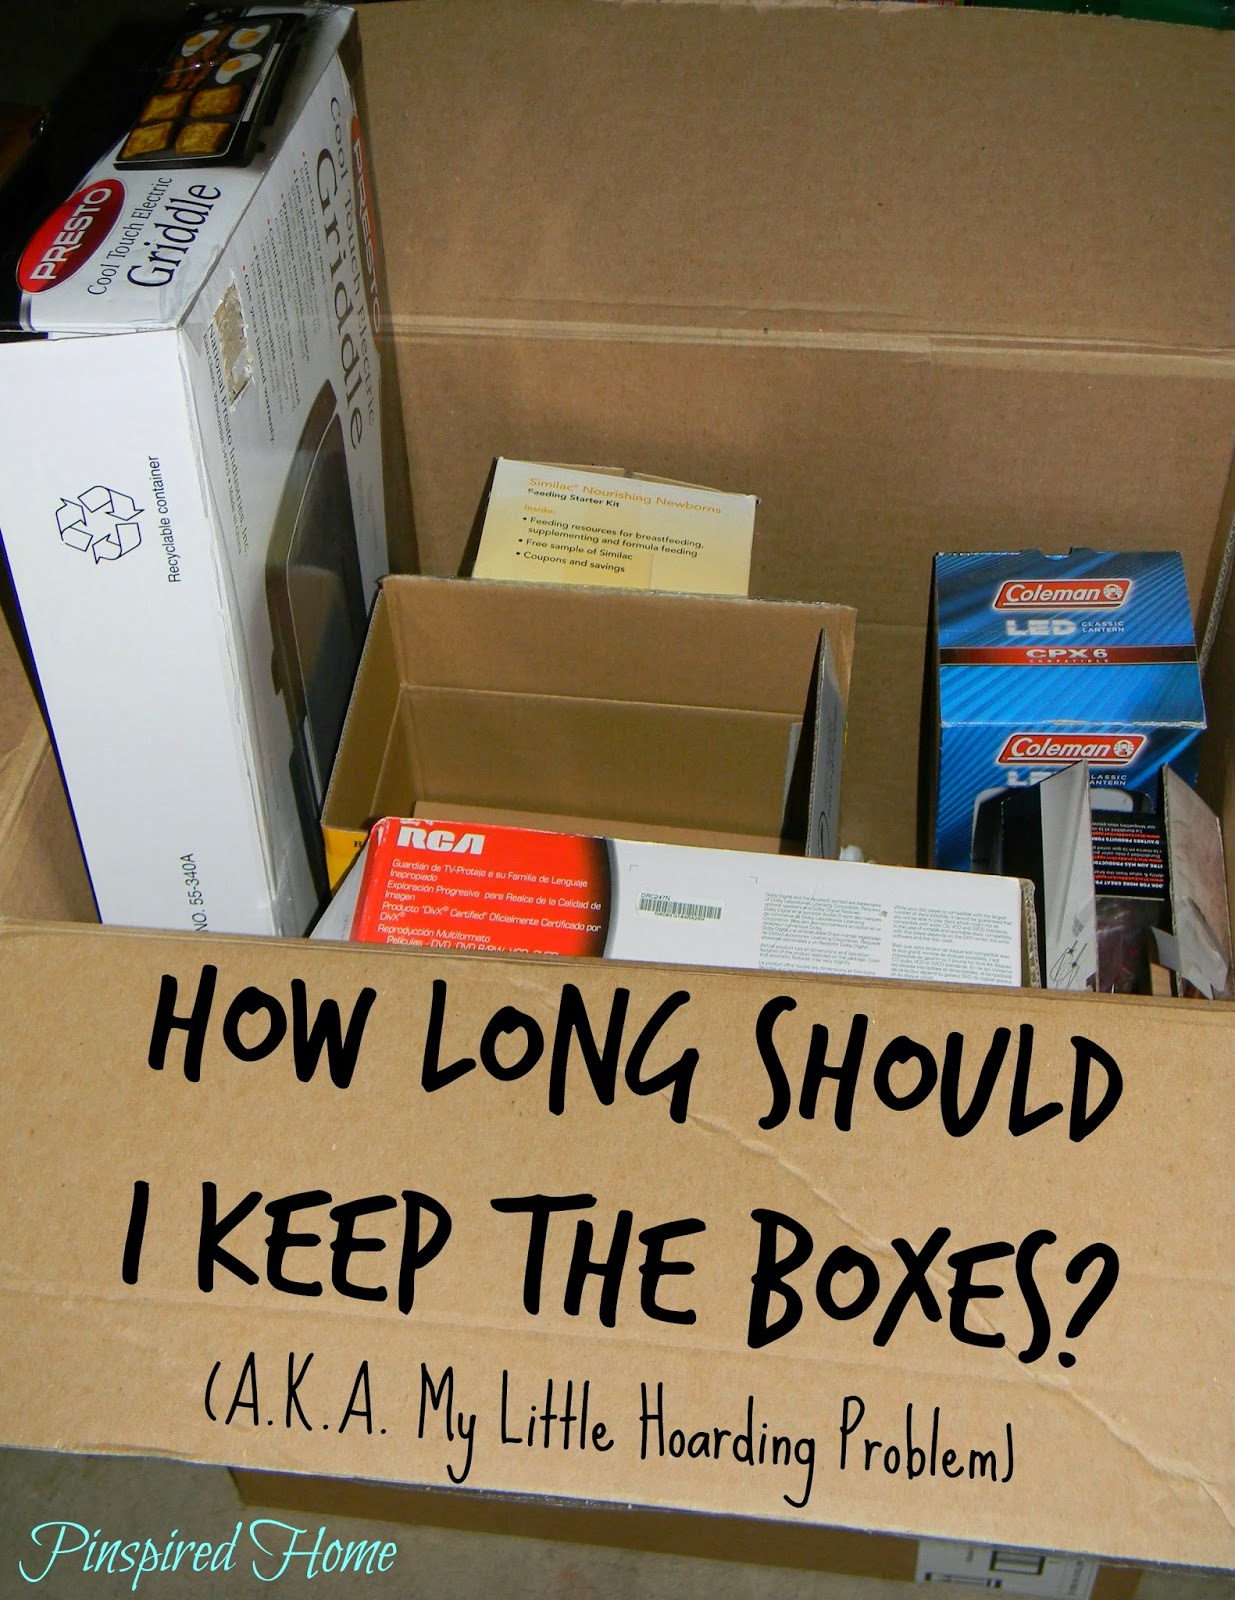 http://pinspiredhome.blogspot.com/2014/04/how-long-should-i-keep-boxes-aka-my.html